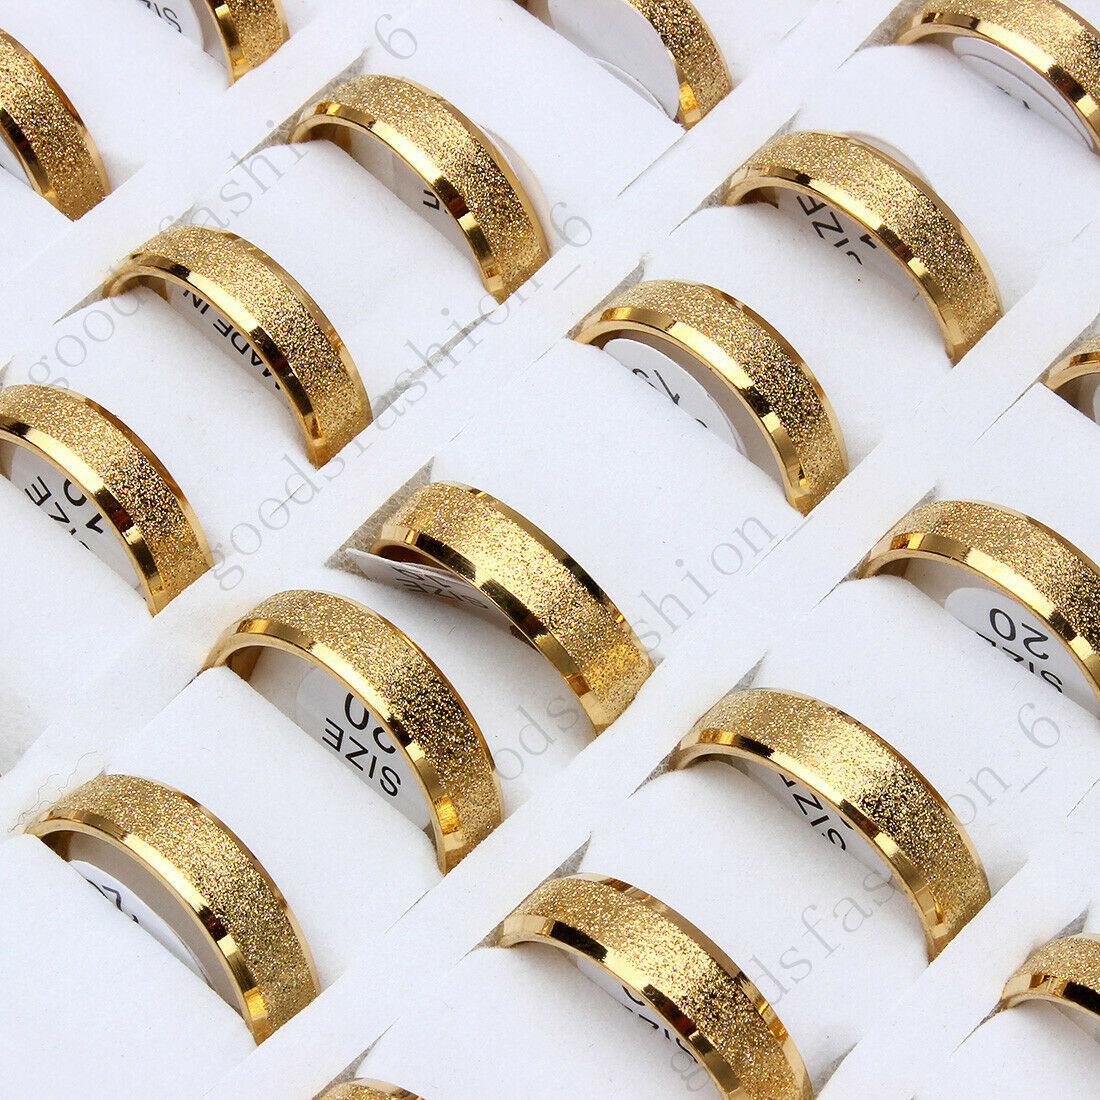 40Pcs Lots Womens Fashion CHANGE COLOR Mood Rings Wholesale Jewelry